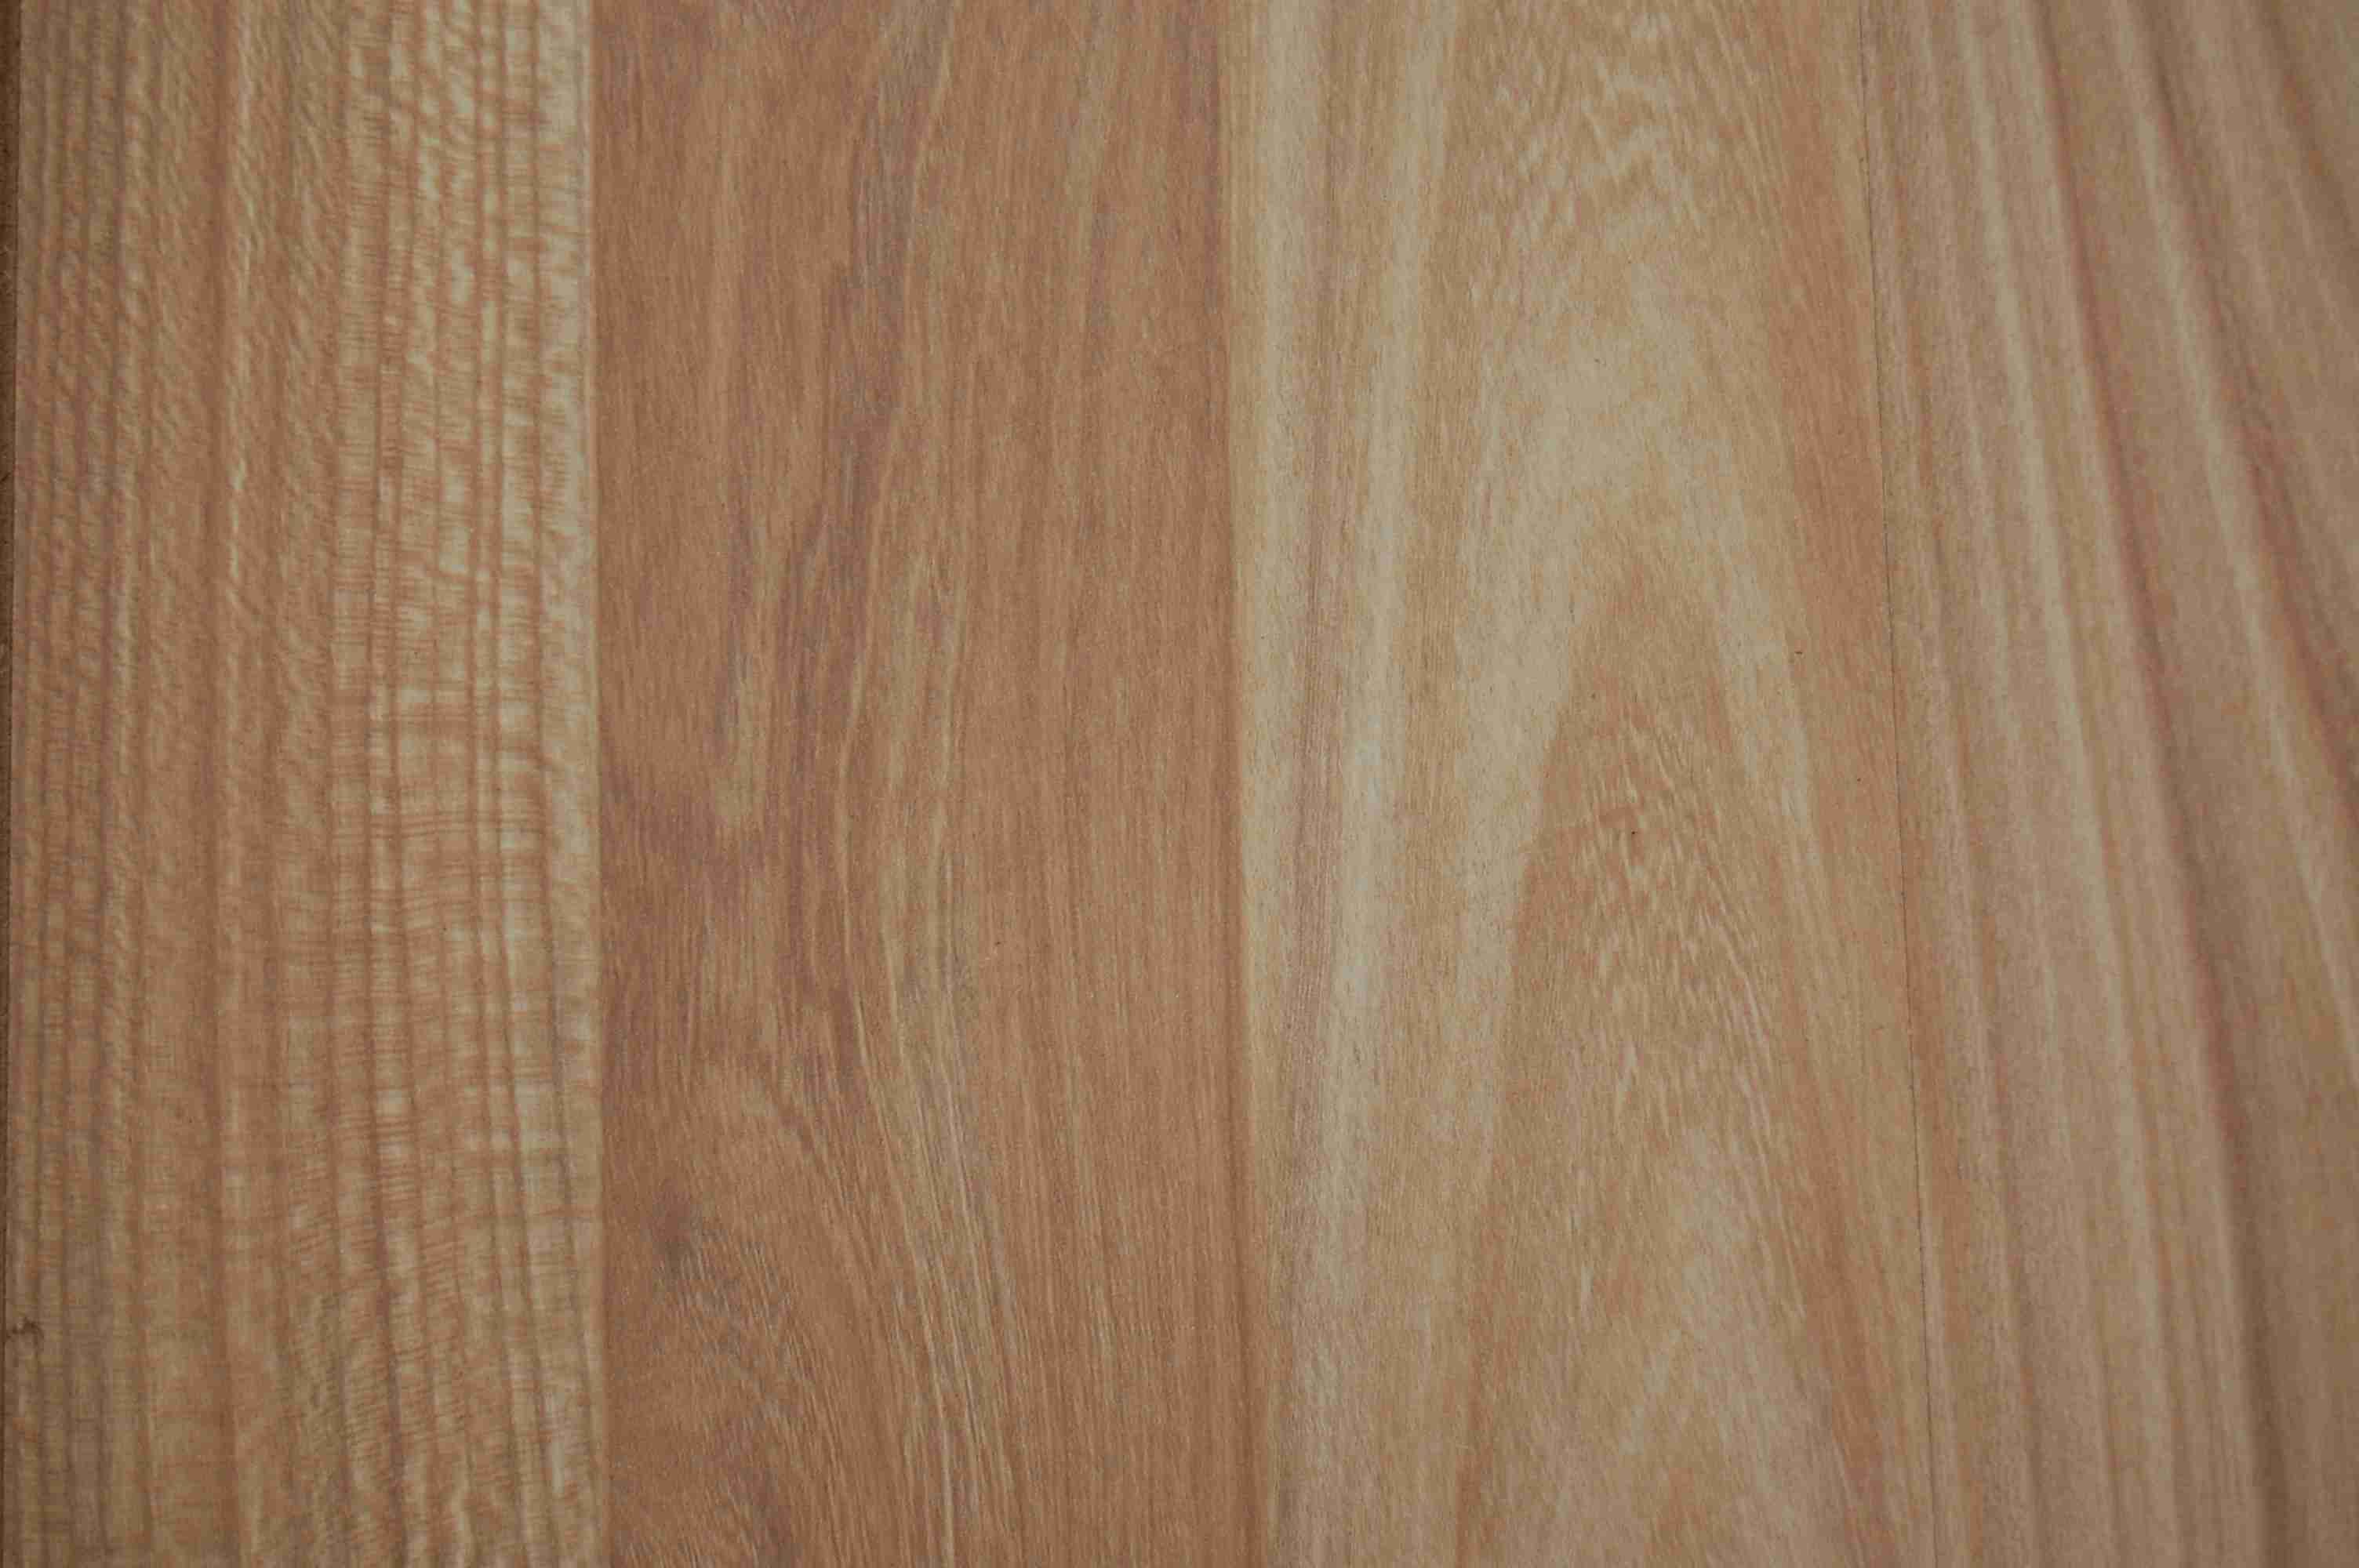 Removing Water Stains From Wood, Water Stains On Laminate Flooring